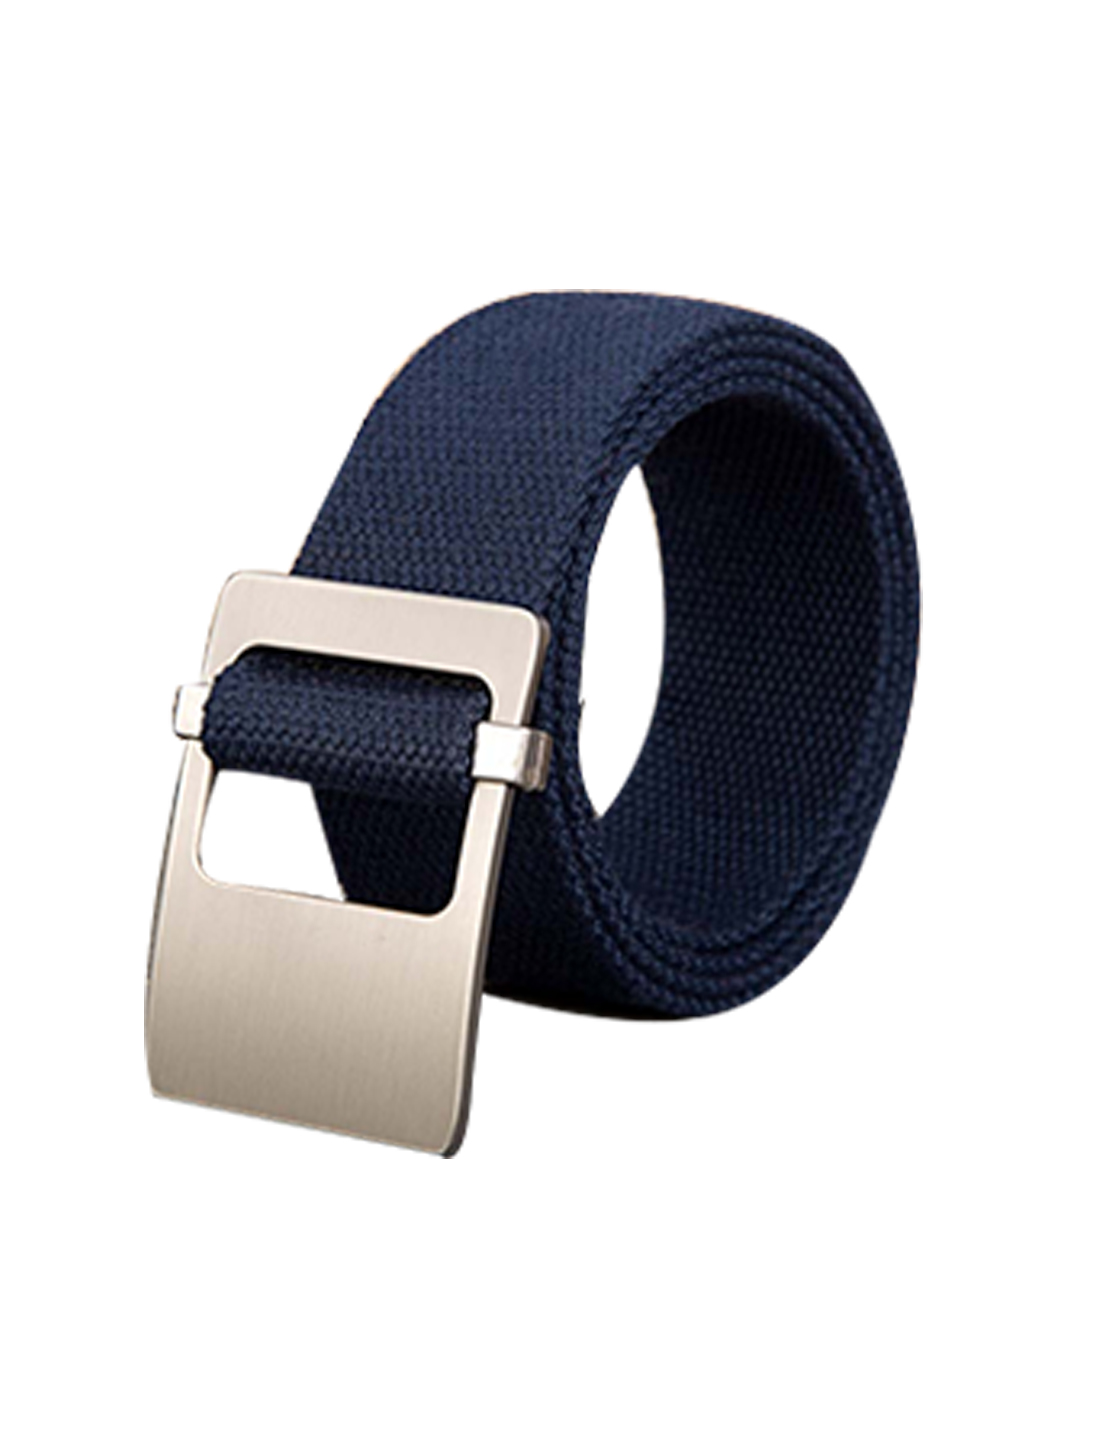 Unisex Canvas Adjustable Holeless Flat Metal Buckle Solid Color Belt Navy Blue